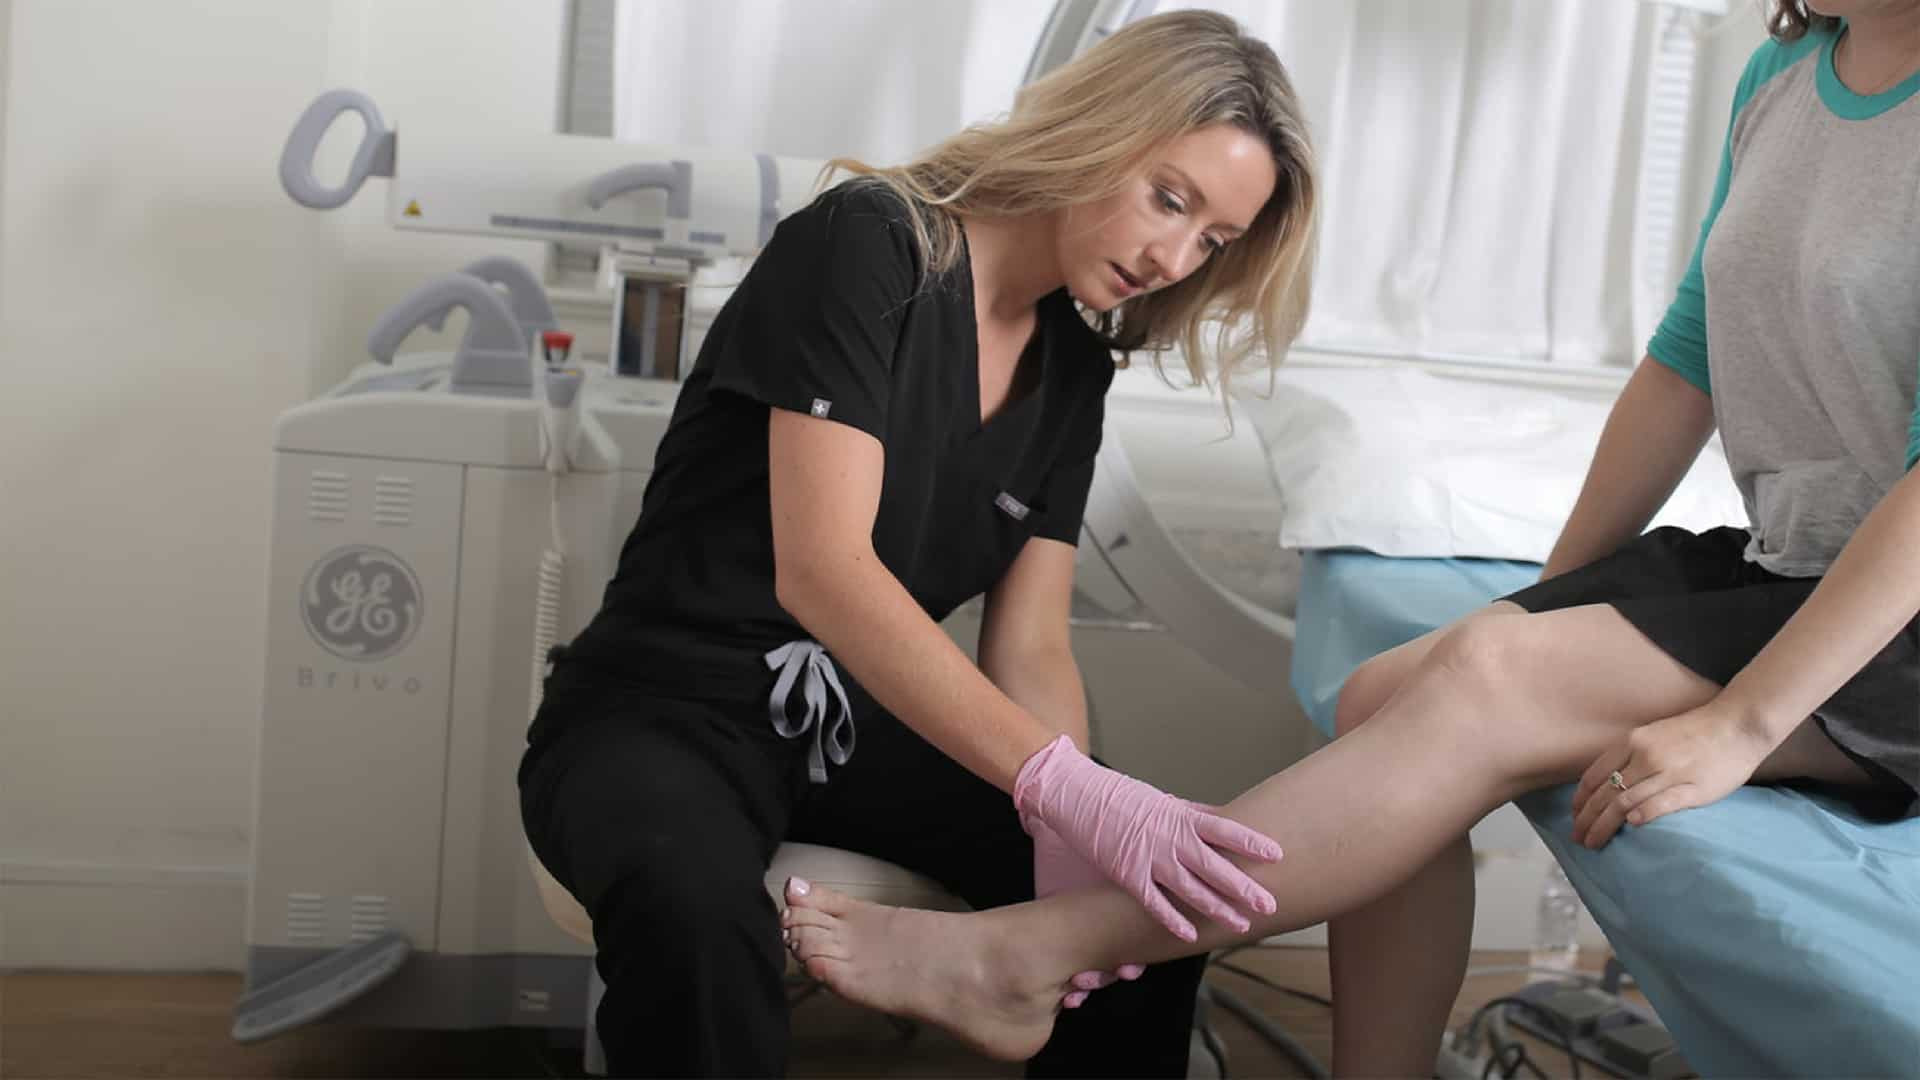 Varicose veins is caused by a chronic condition called venous insufficiency. In this article, we'll discuss some of the most effective treatments for varicose veins.